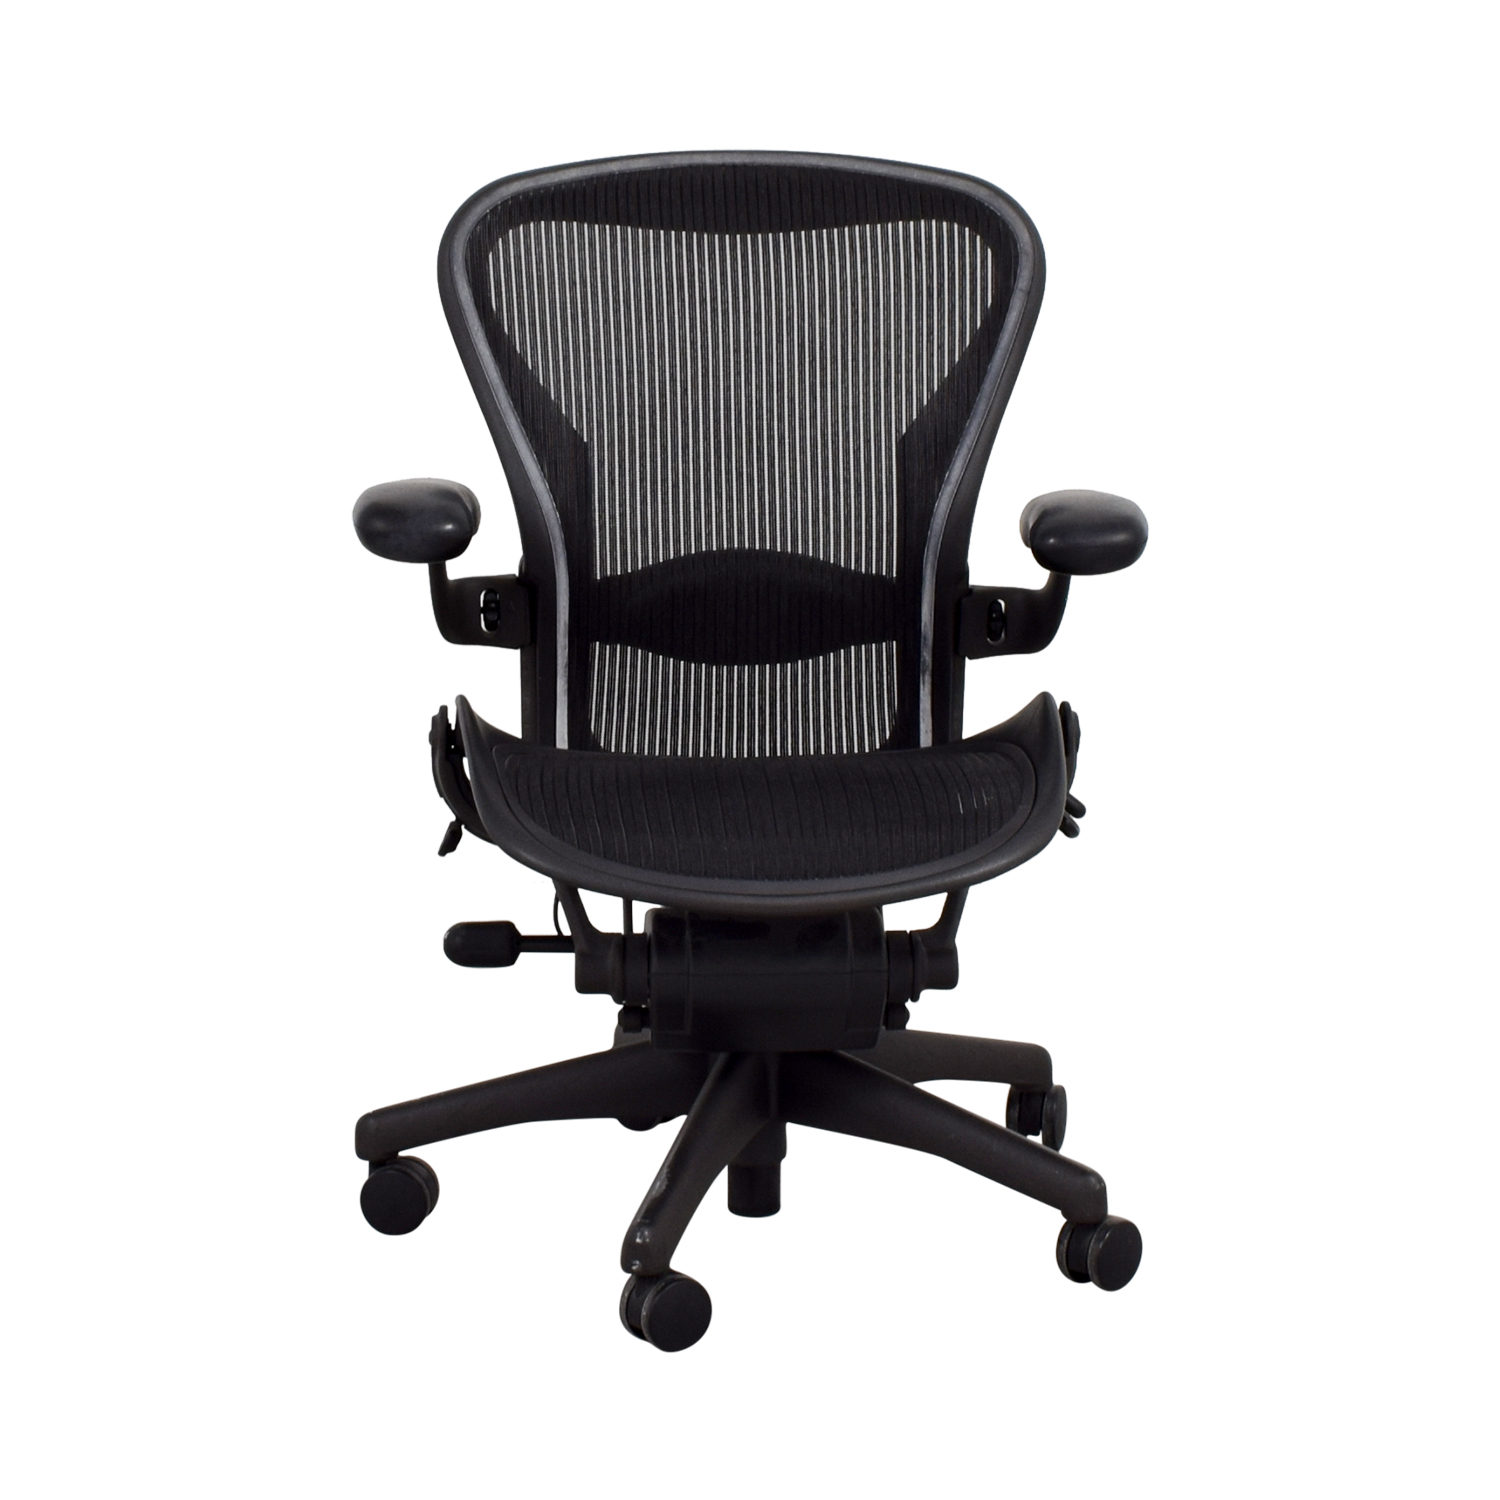 High Quality Herman Miller Herman Miller Aeron Miller Black Desk Chair Nyc